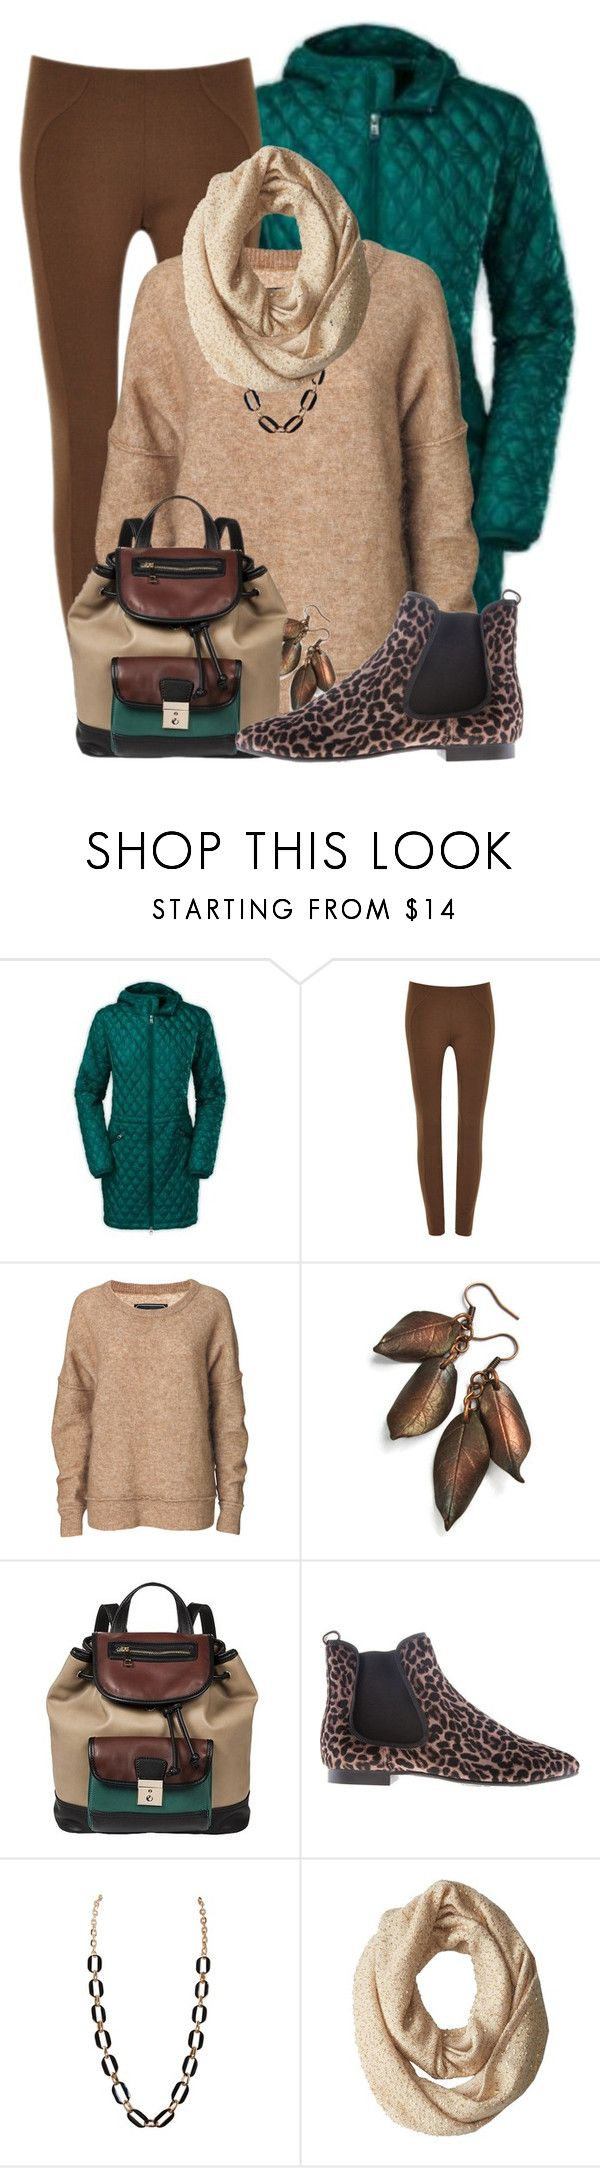 """Cosy Sweater and Leggings"" by lakegirl511 ❤ liked on Polyvore featuring The North Face, Marc Jacobs, By Malene Birger, Melie Bianco, Pretty Ballerinas, Humble Chic and Kate Spade"